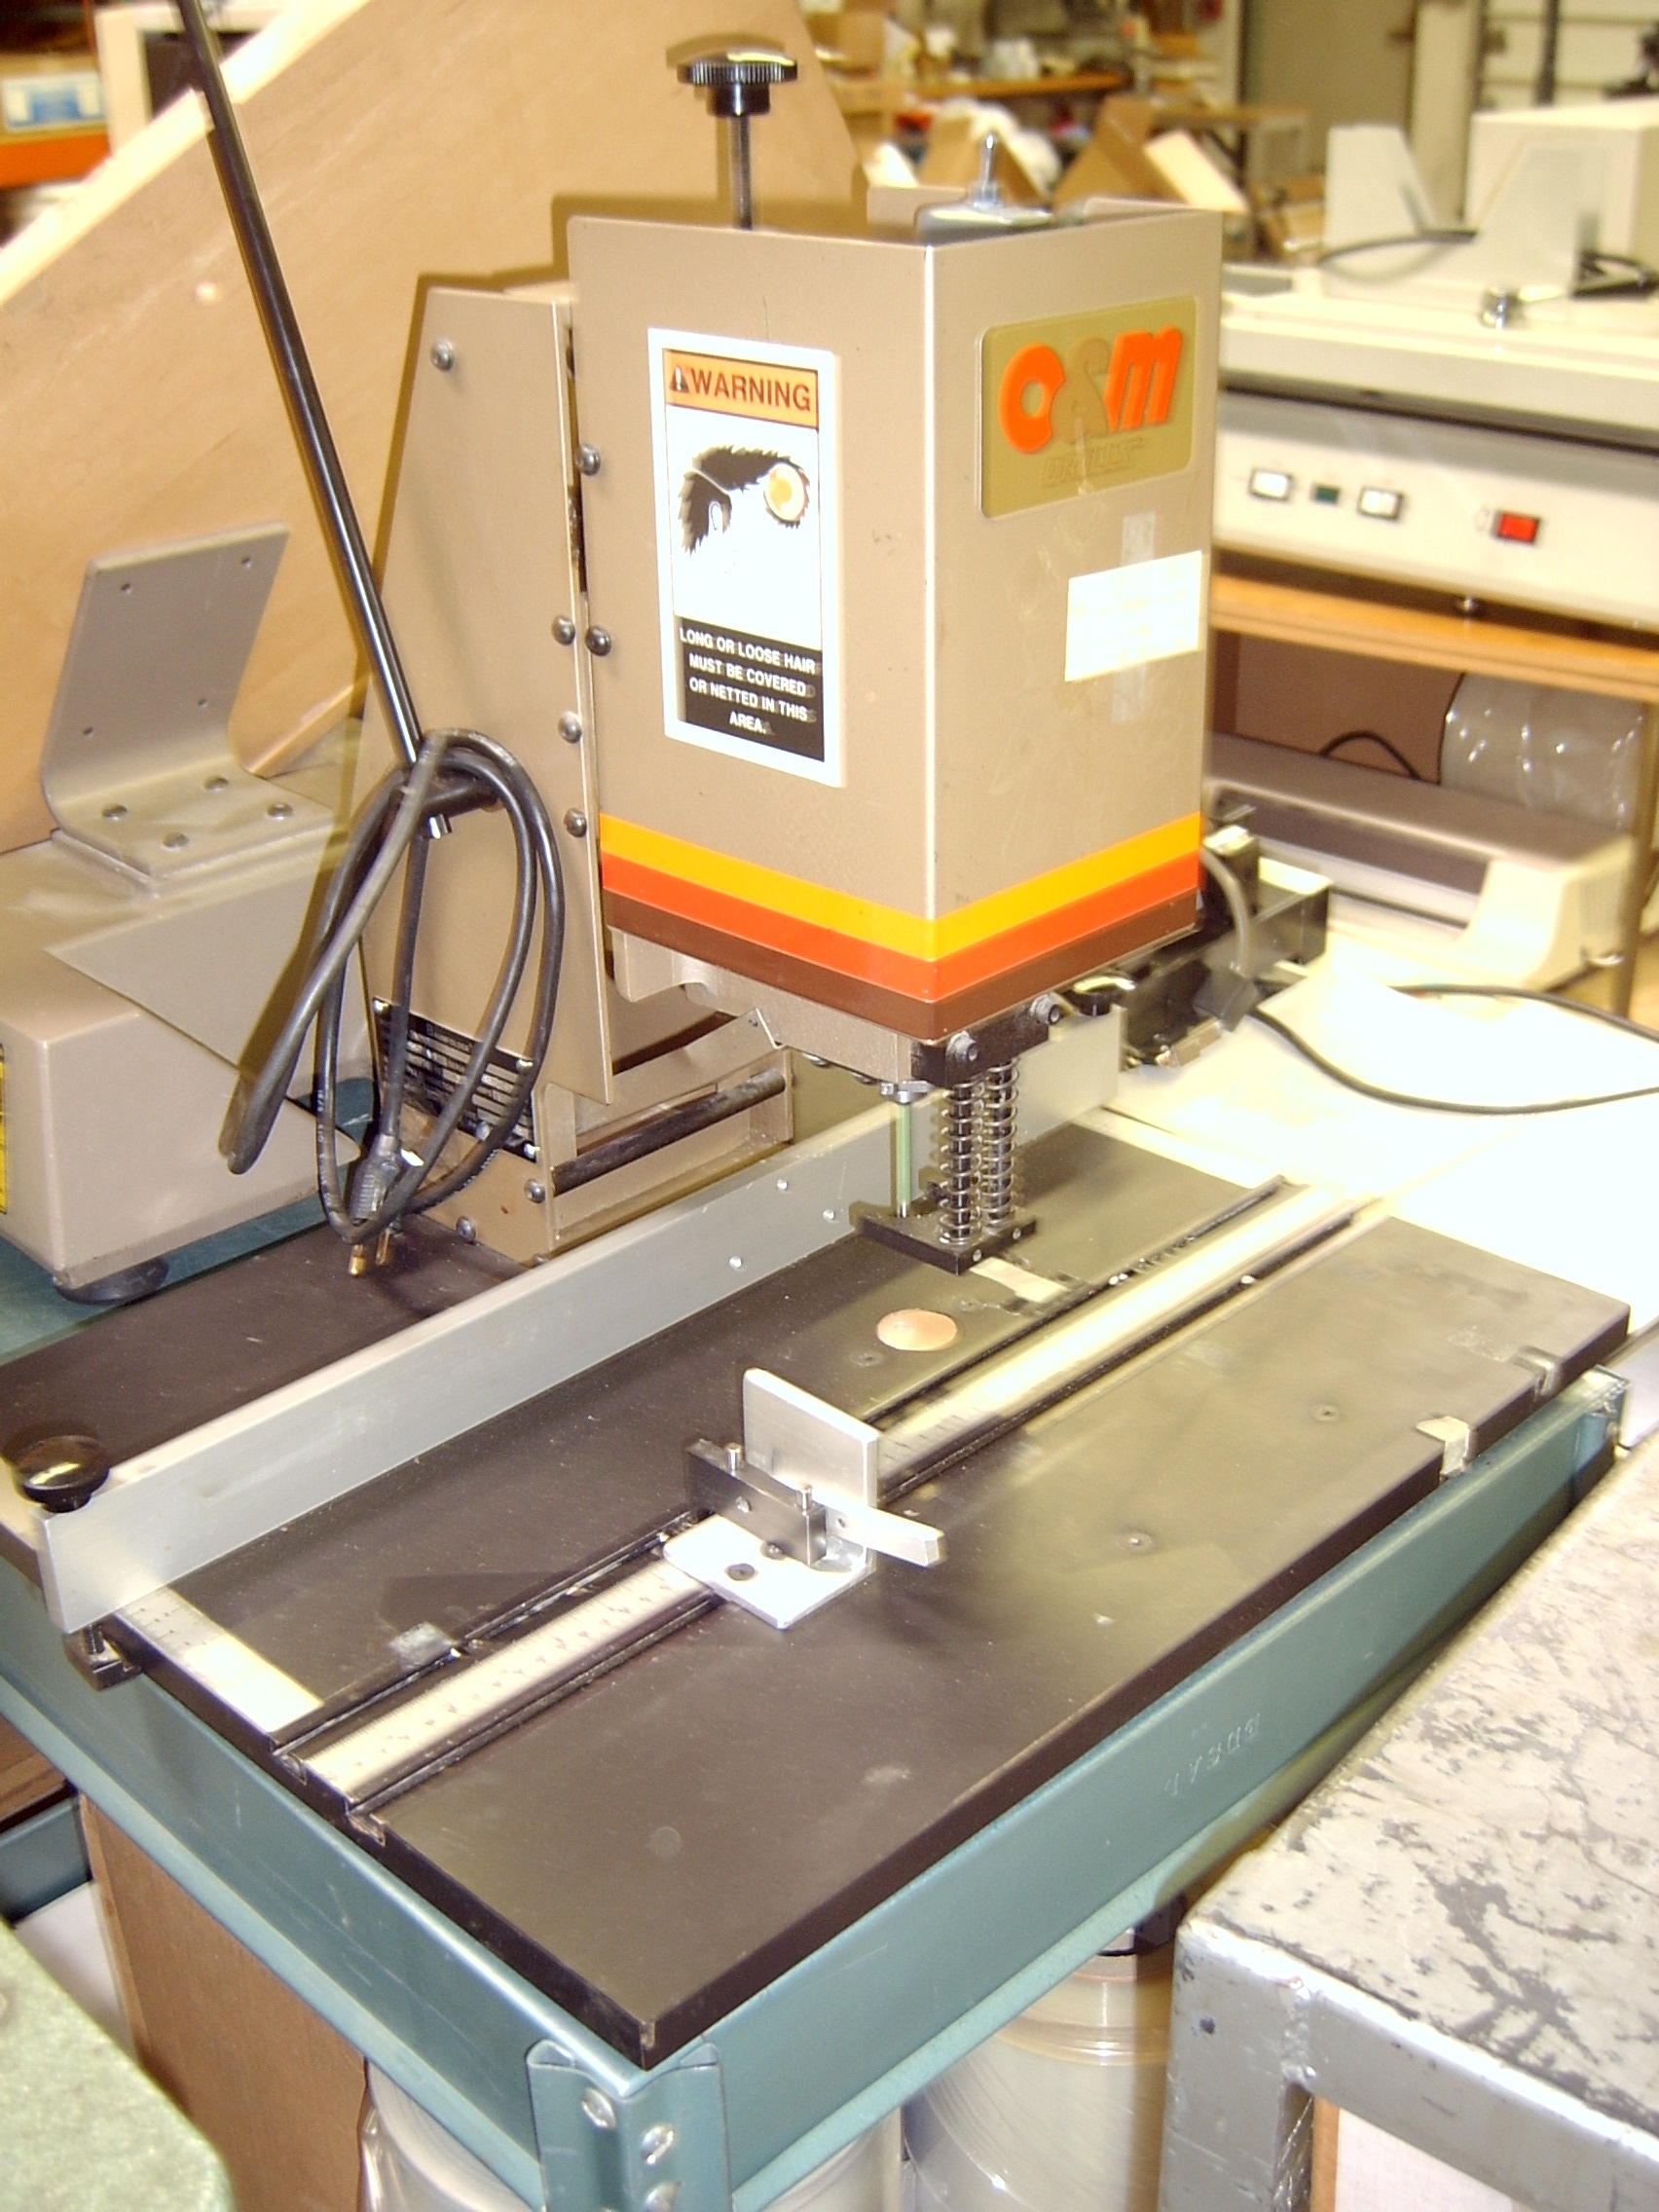 4065, O&M (NYGREN DAHLY) SINGLE SPINDLE TABLE TOP PAPER DRILL ...